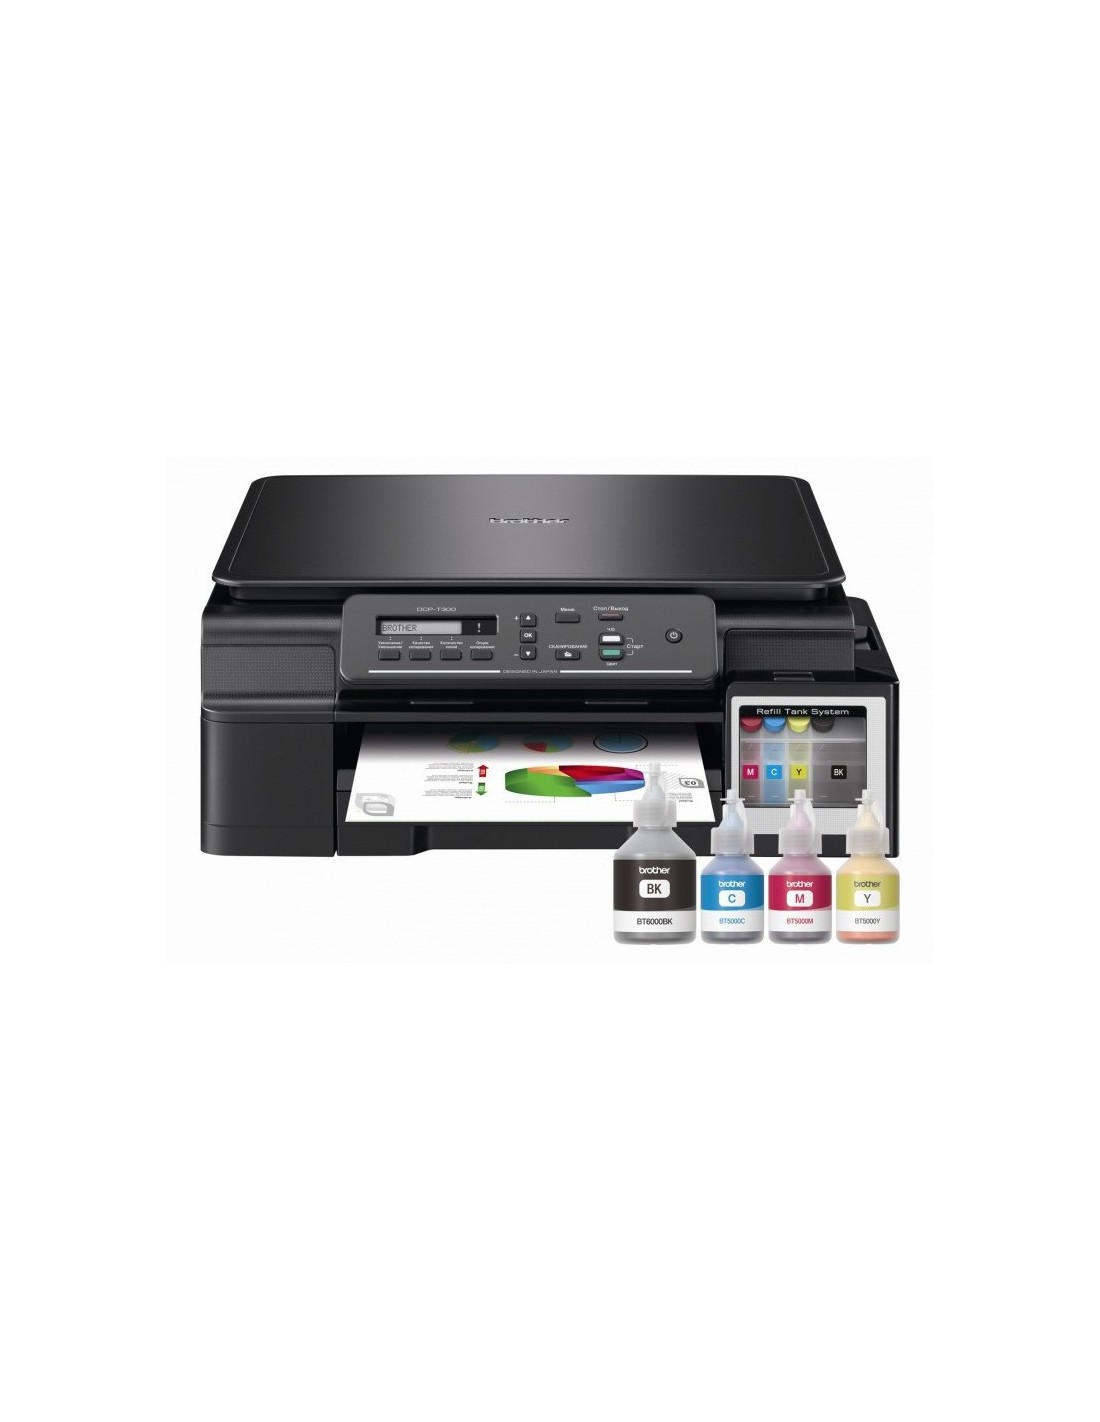 Imprimante Couleur Jet D Encre 3 En 1 Brother Dcp T300 Printer Inkjet Multifungsi Dencre